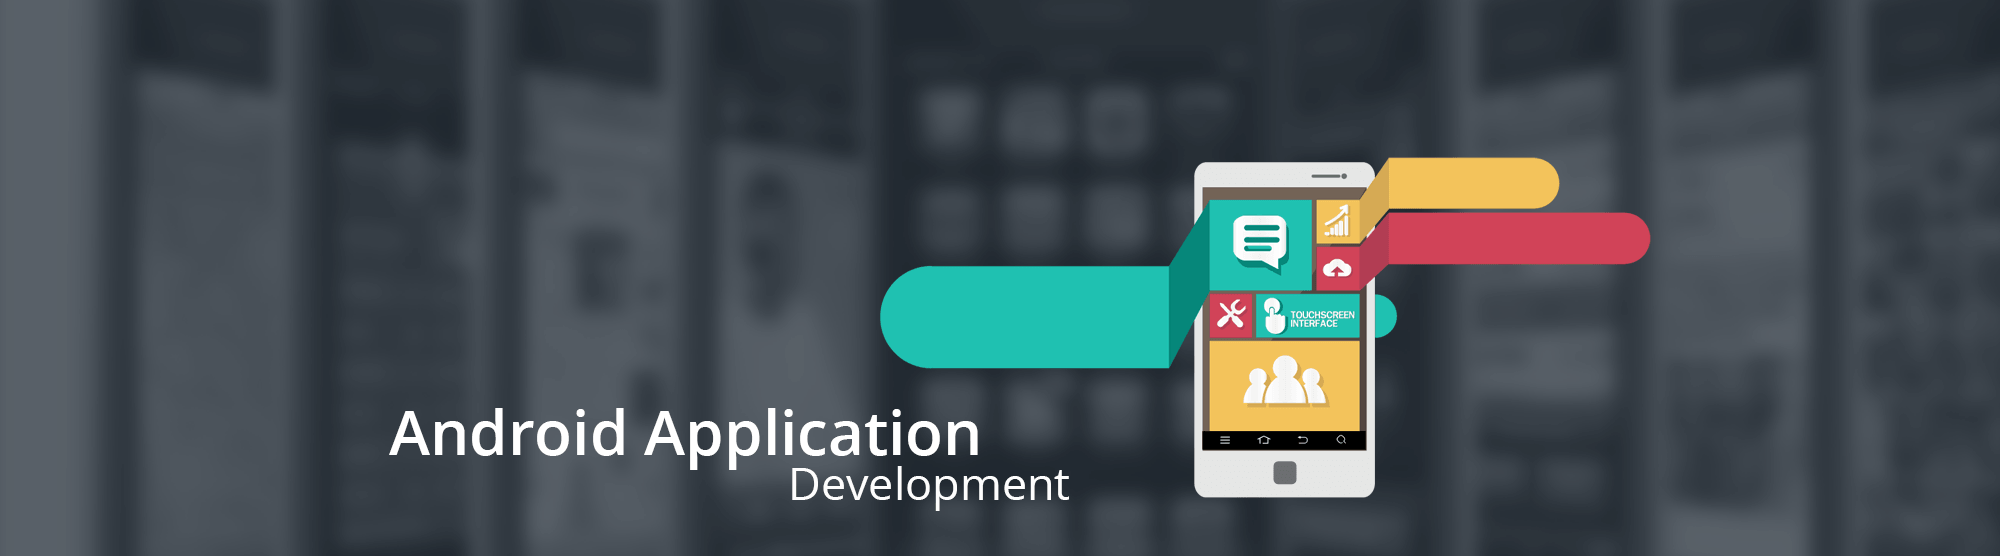 ANDROID DEVELOPMENT STUDIO, ANDROID APP DEVELOPMENT